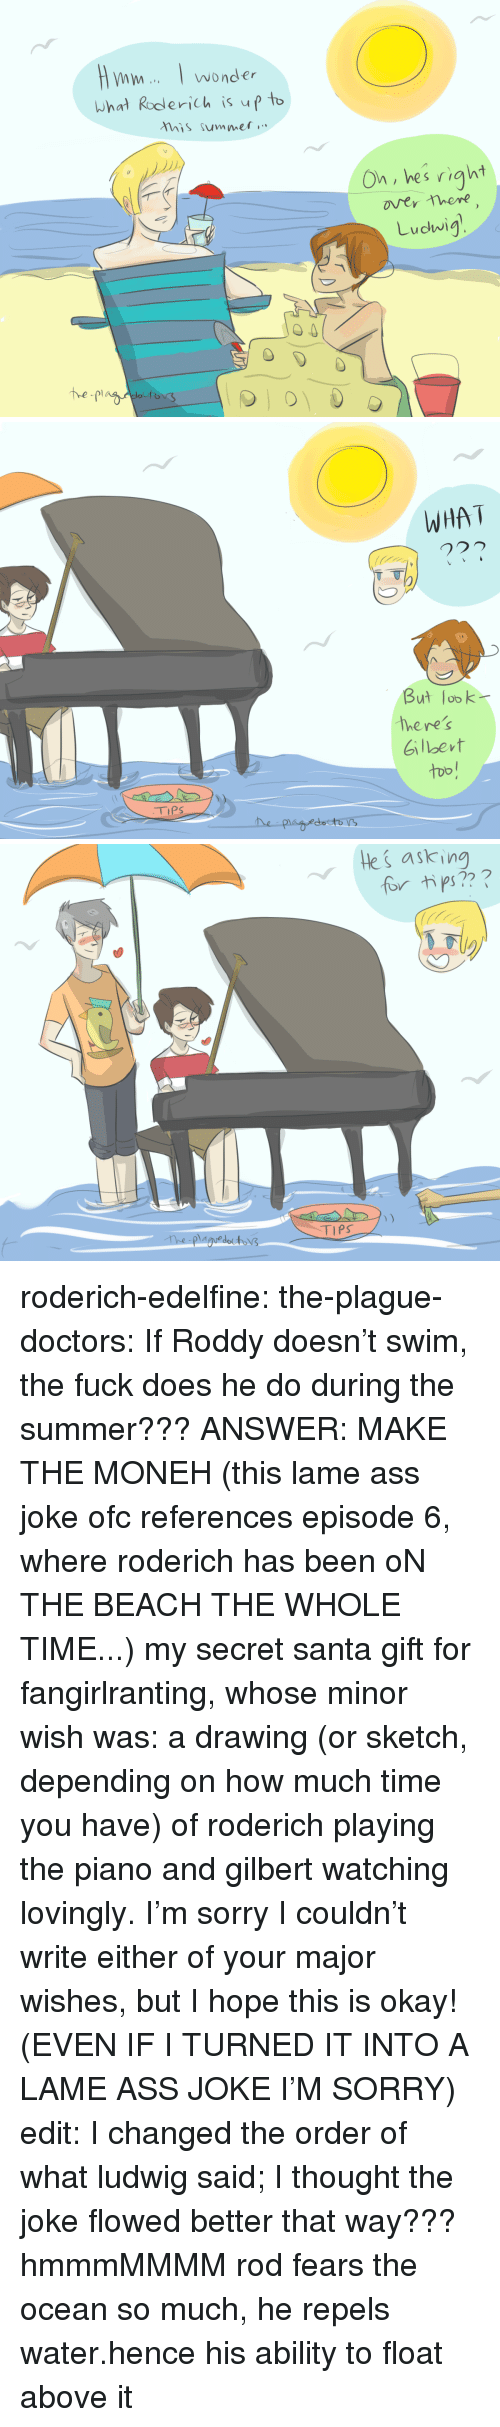 Ass, Sorry, and Target: wonder  What Roderich is up t  his summet  On, hes right  Ludwig   WHA T  But lobk  here's  Gilbevt  too!   ki askin  for tips?  TIPS roderich-edelfine:  the-plague-doctors: If Roddy doesn't swim, the fuck does he do during the summer??? ANSWER: MAKE THE MONEH (this lame ass joke ofc references episode 6, where roderich has been oN THE BEACH THE WHOLE TIME...) my secret santa gift for fangirlranting, whose minor wish was: a drawing (or sketch, depending on how much time you have) of roderich playing the piano and gilbert watching lovingly. I'm sorry I couldn't write either of your major wishes, but I hope this is okay! (EVEN IF I TURNED IT INTO A LAME ASS JOKE I'M SORRY) edit: I changed the order of what ludwig said; I thought the joke flowed better that way??? hmmmMMMM  rod fears the ocean so much, he repels water.hence his ability to float above it